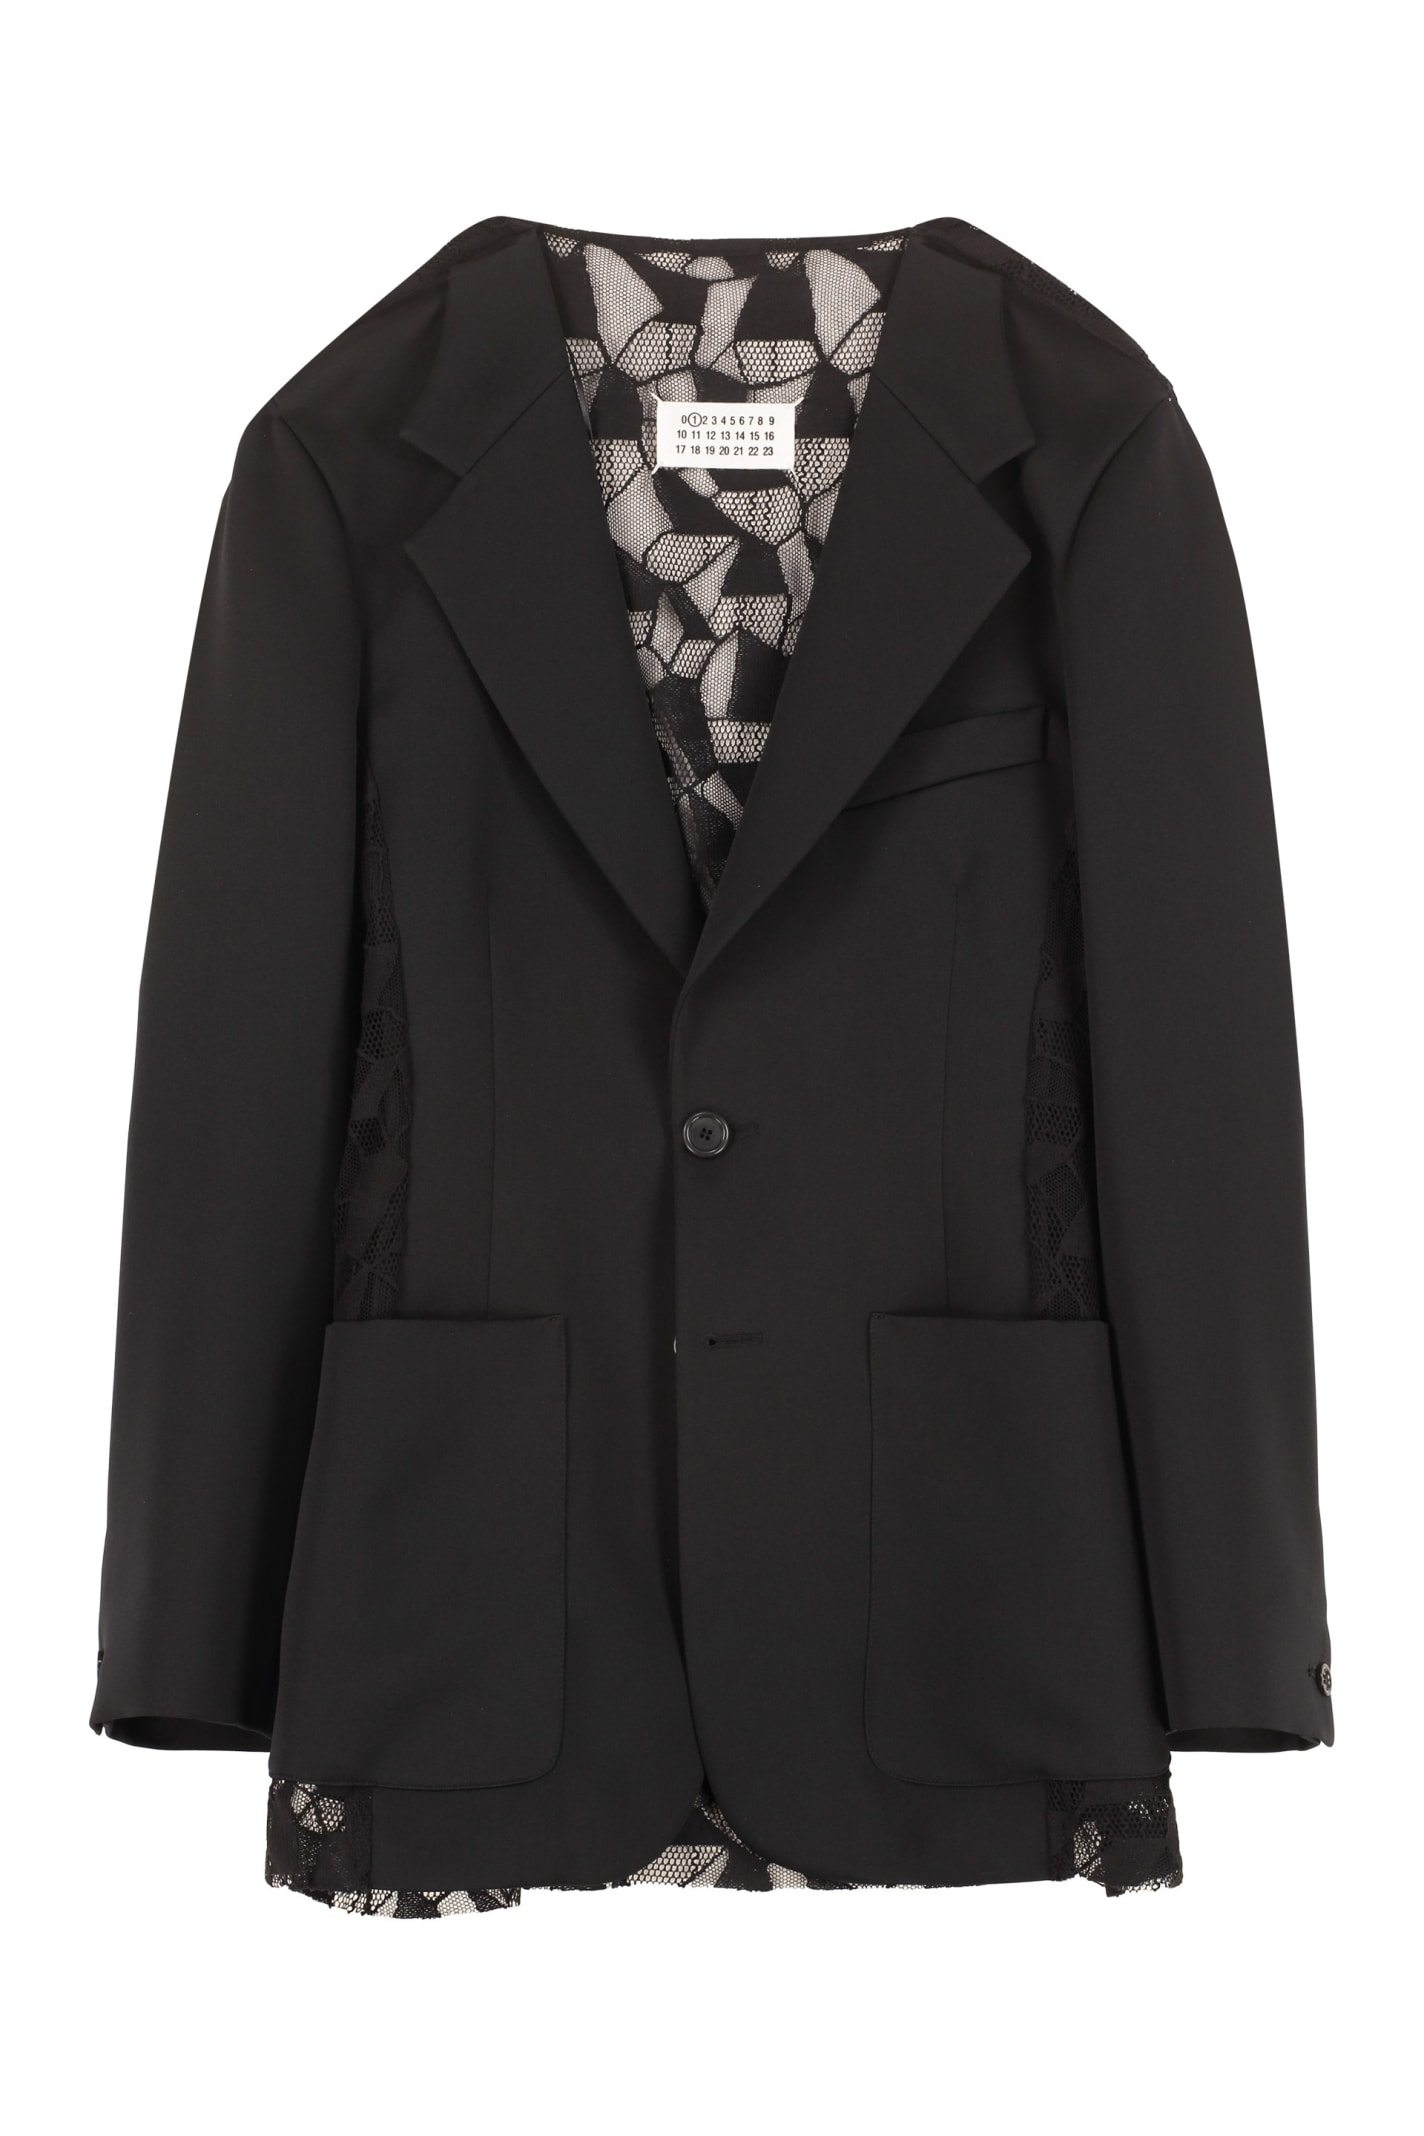 Image of Single-Breasted Two-Button Blazer